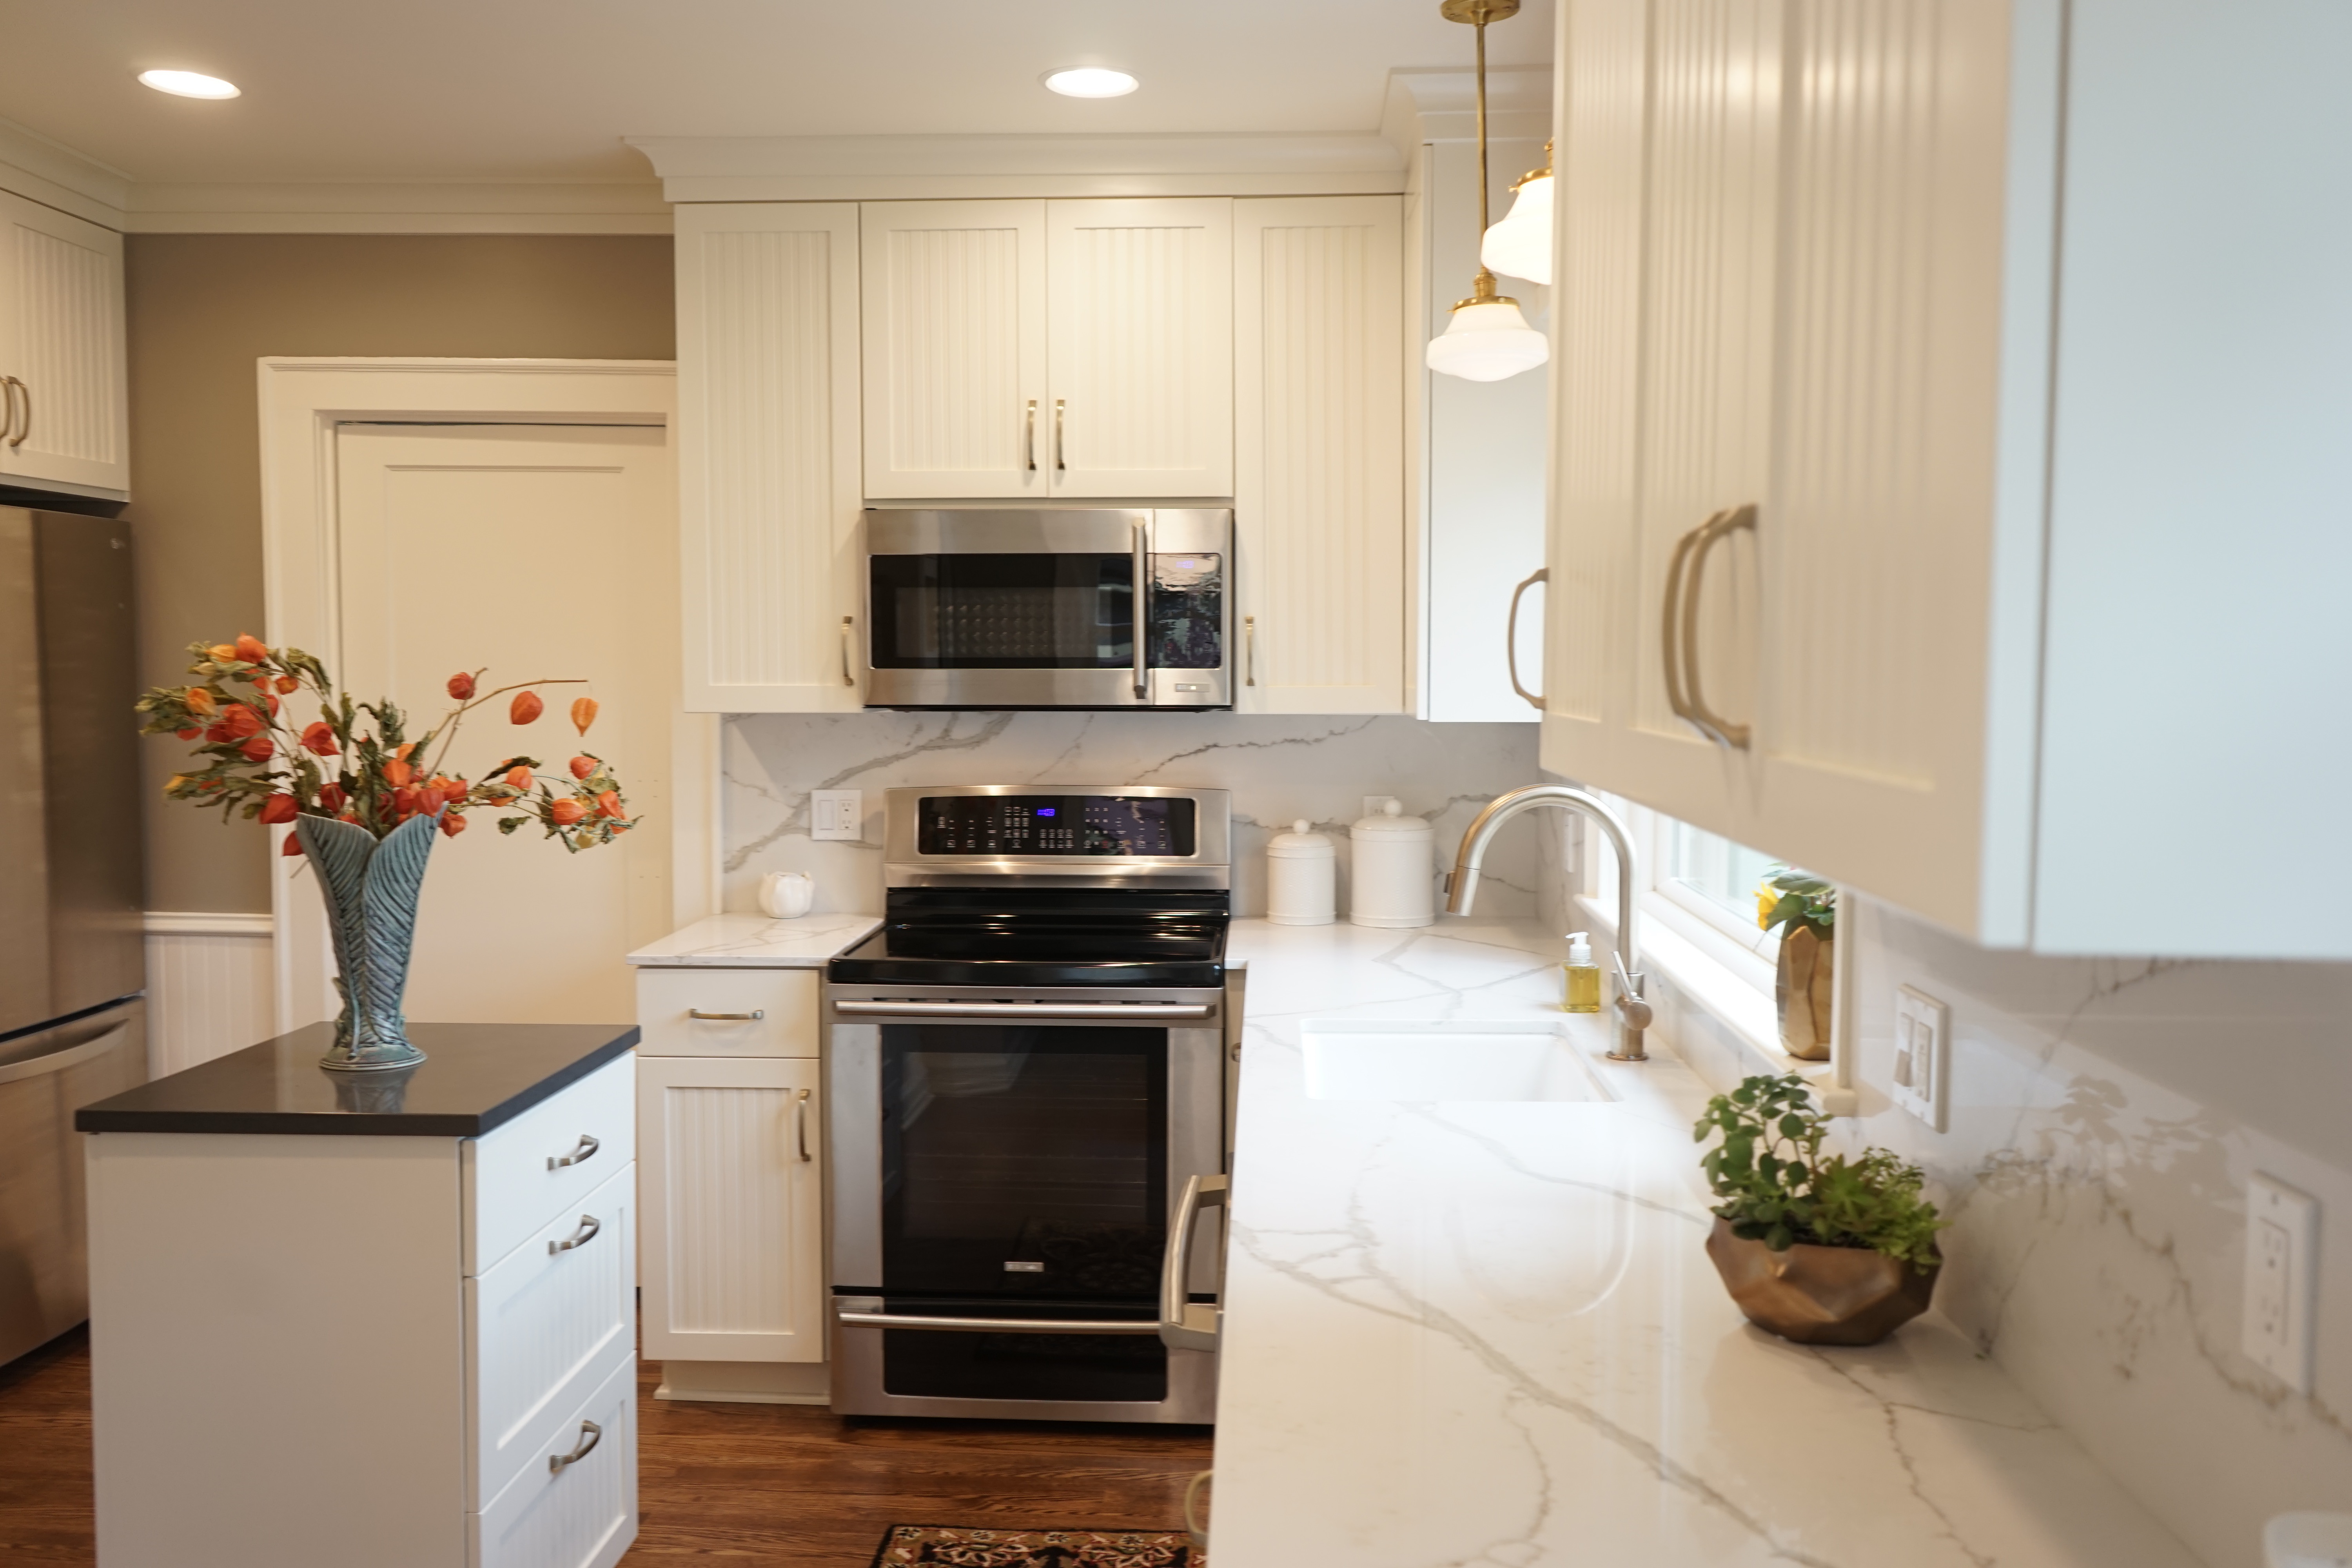 New kitchen counters